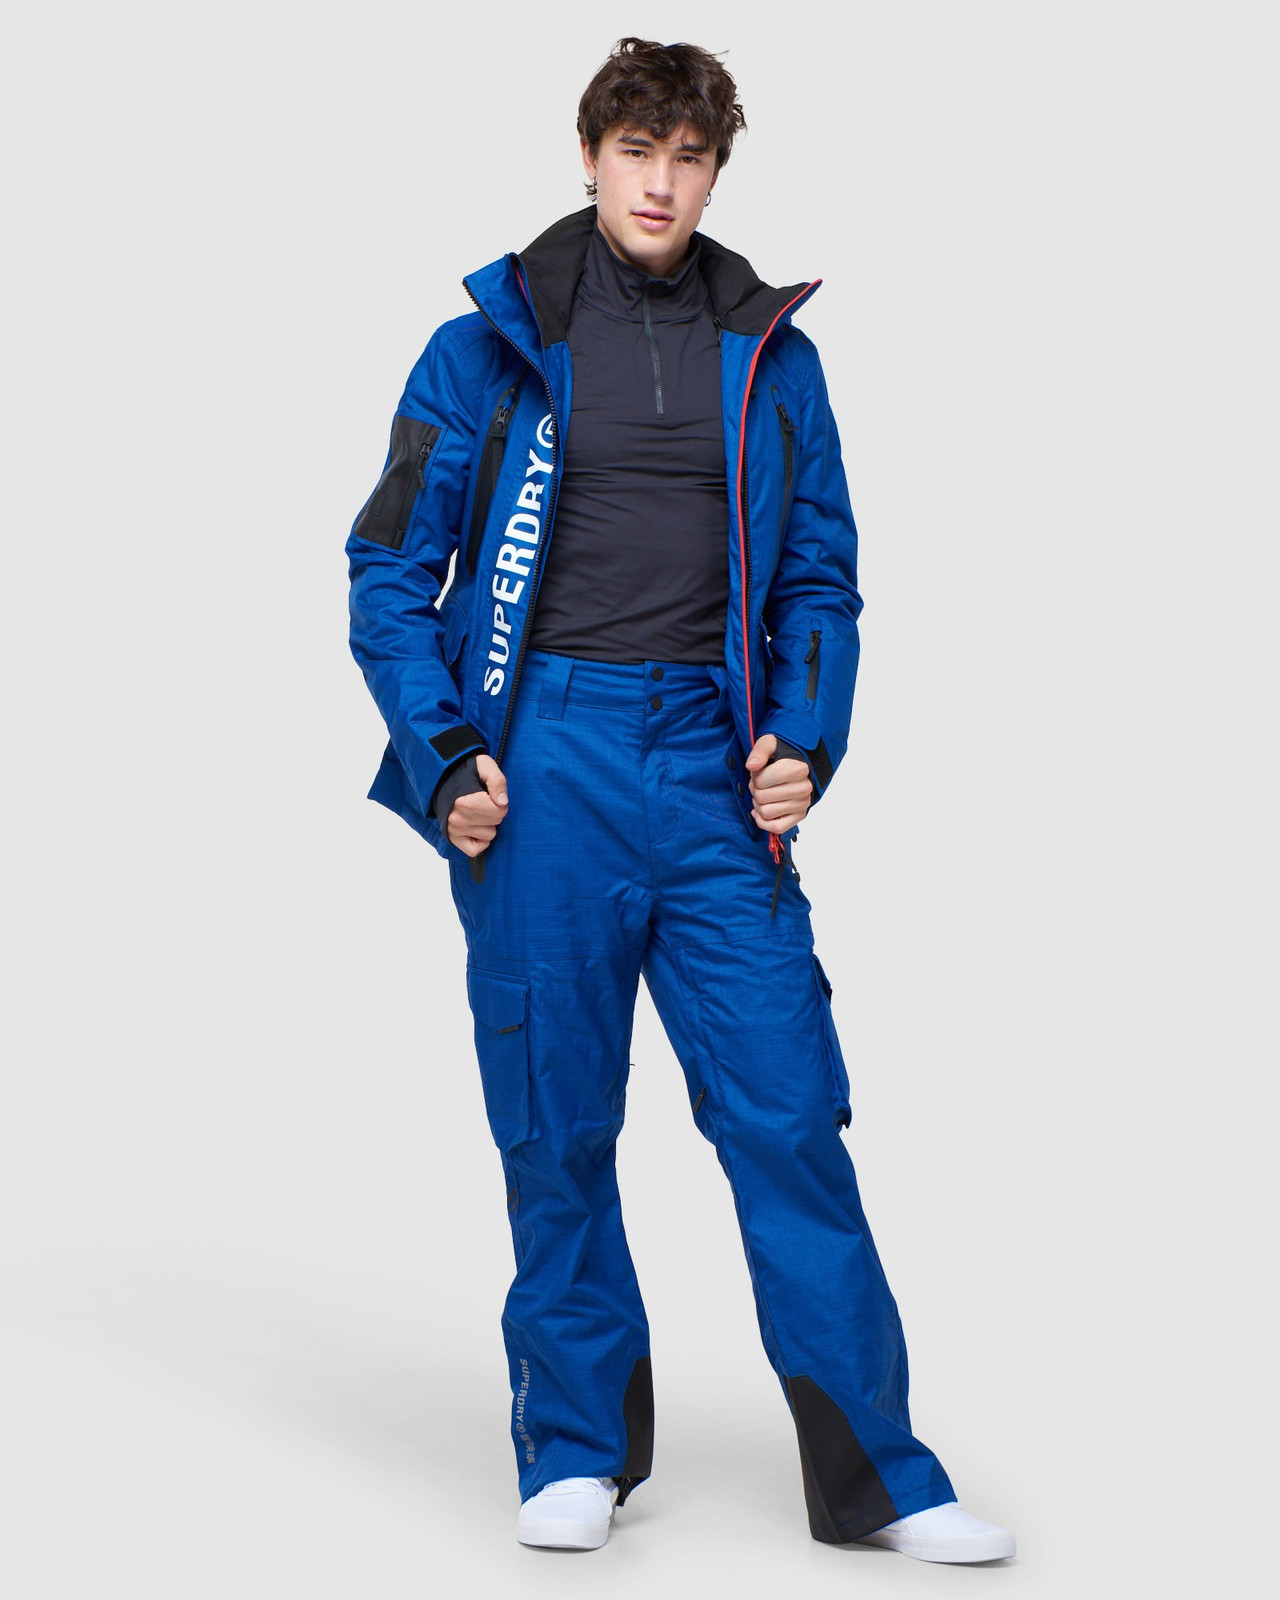 Superdry Mens ULTIMATE MOUNTAIN RESCUE JKT Blue Green Snow Jackets 8